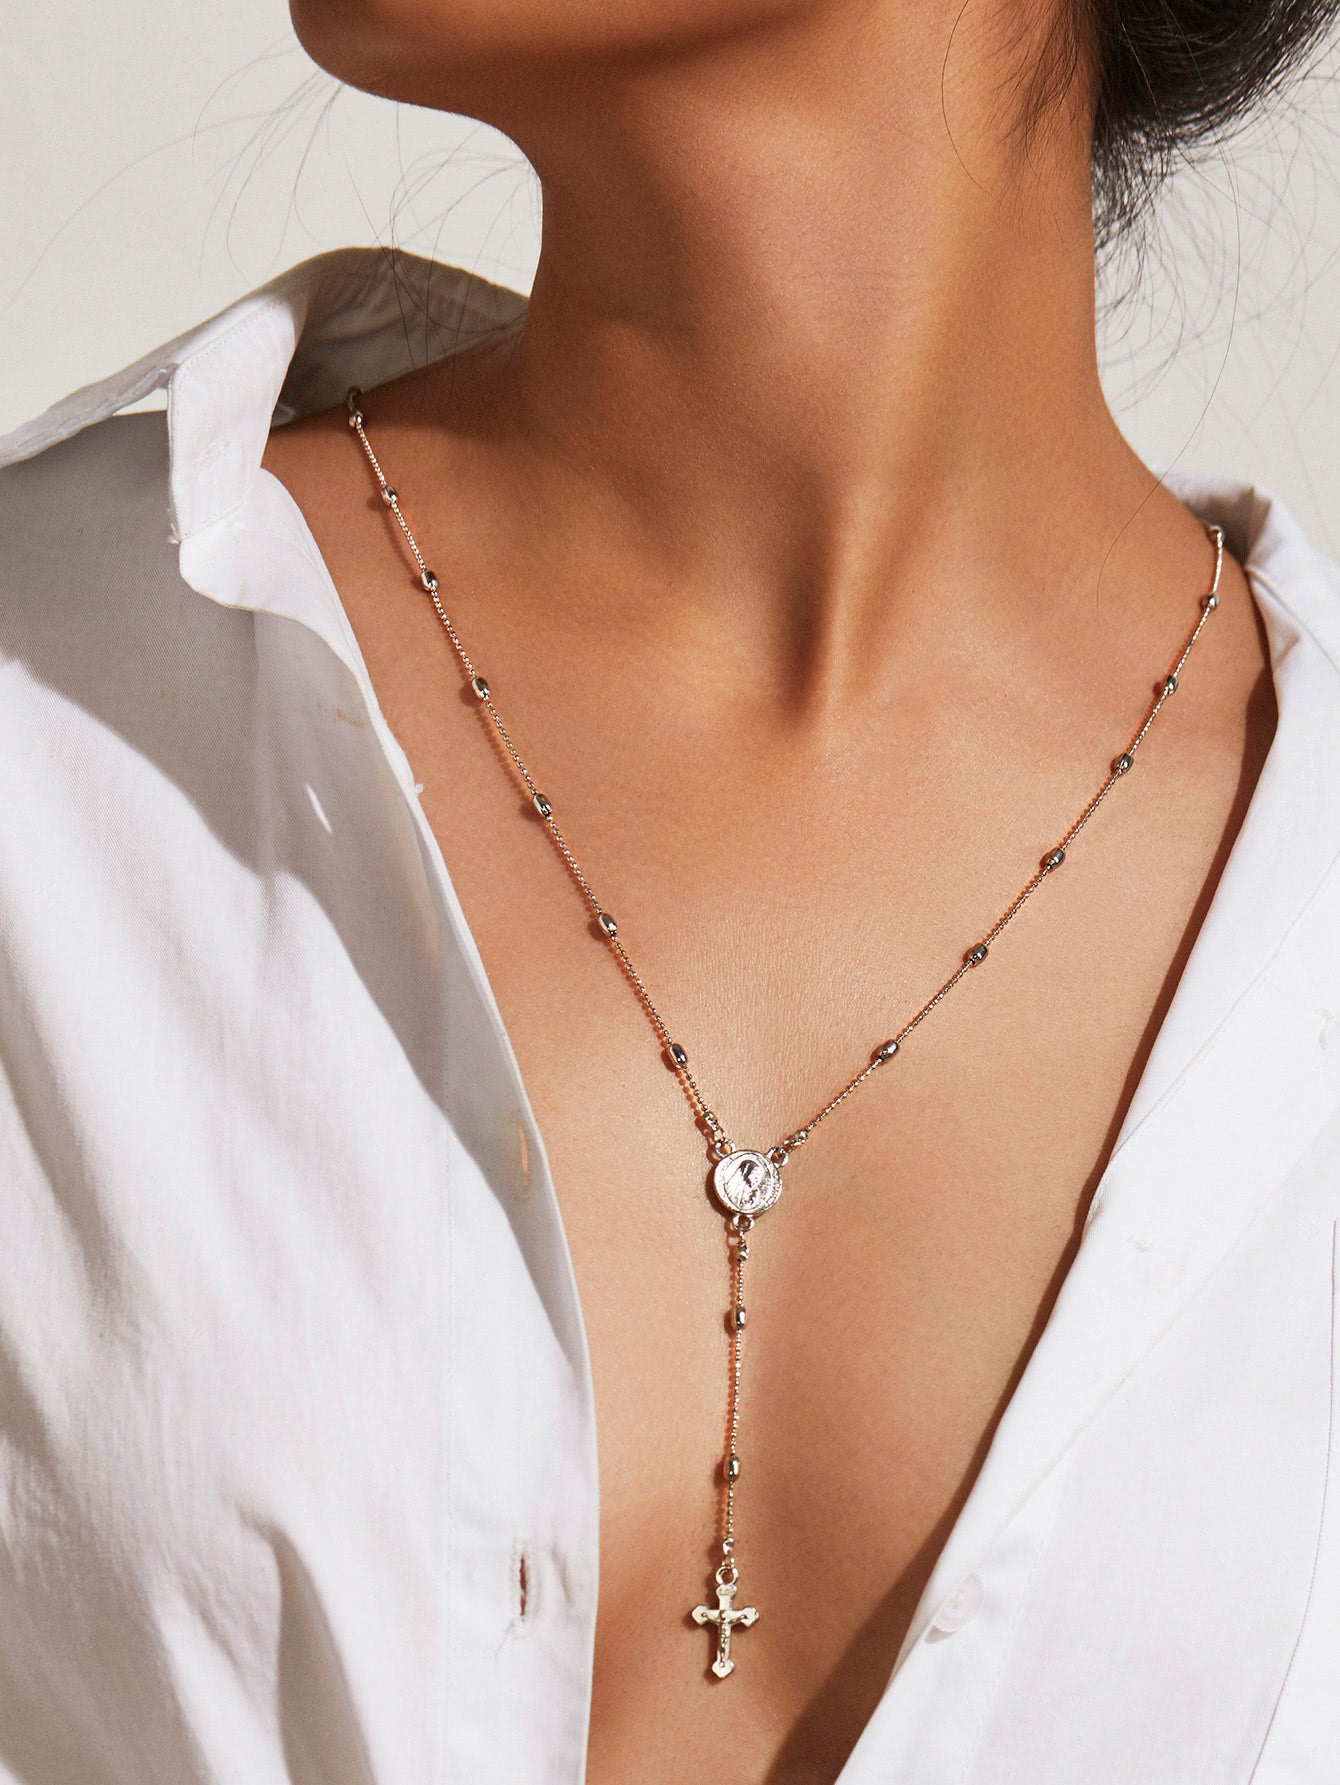 Grey Cross Beaded Silver Pendant Lariats Necklace